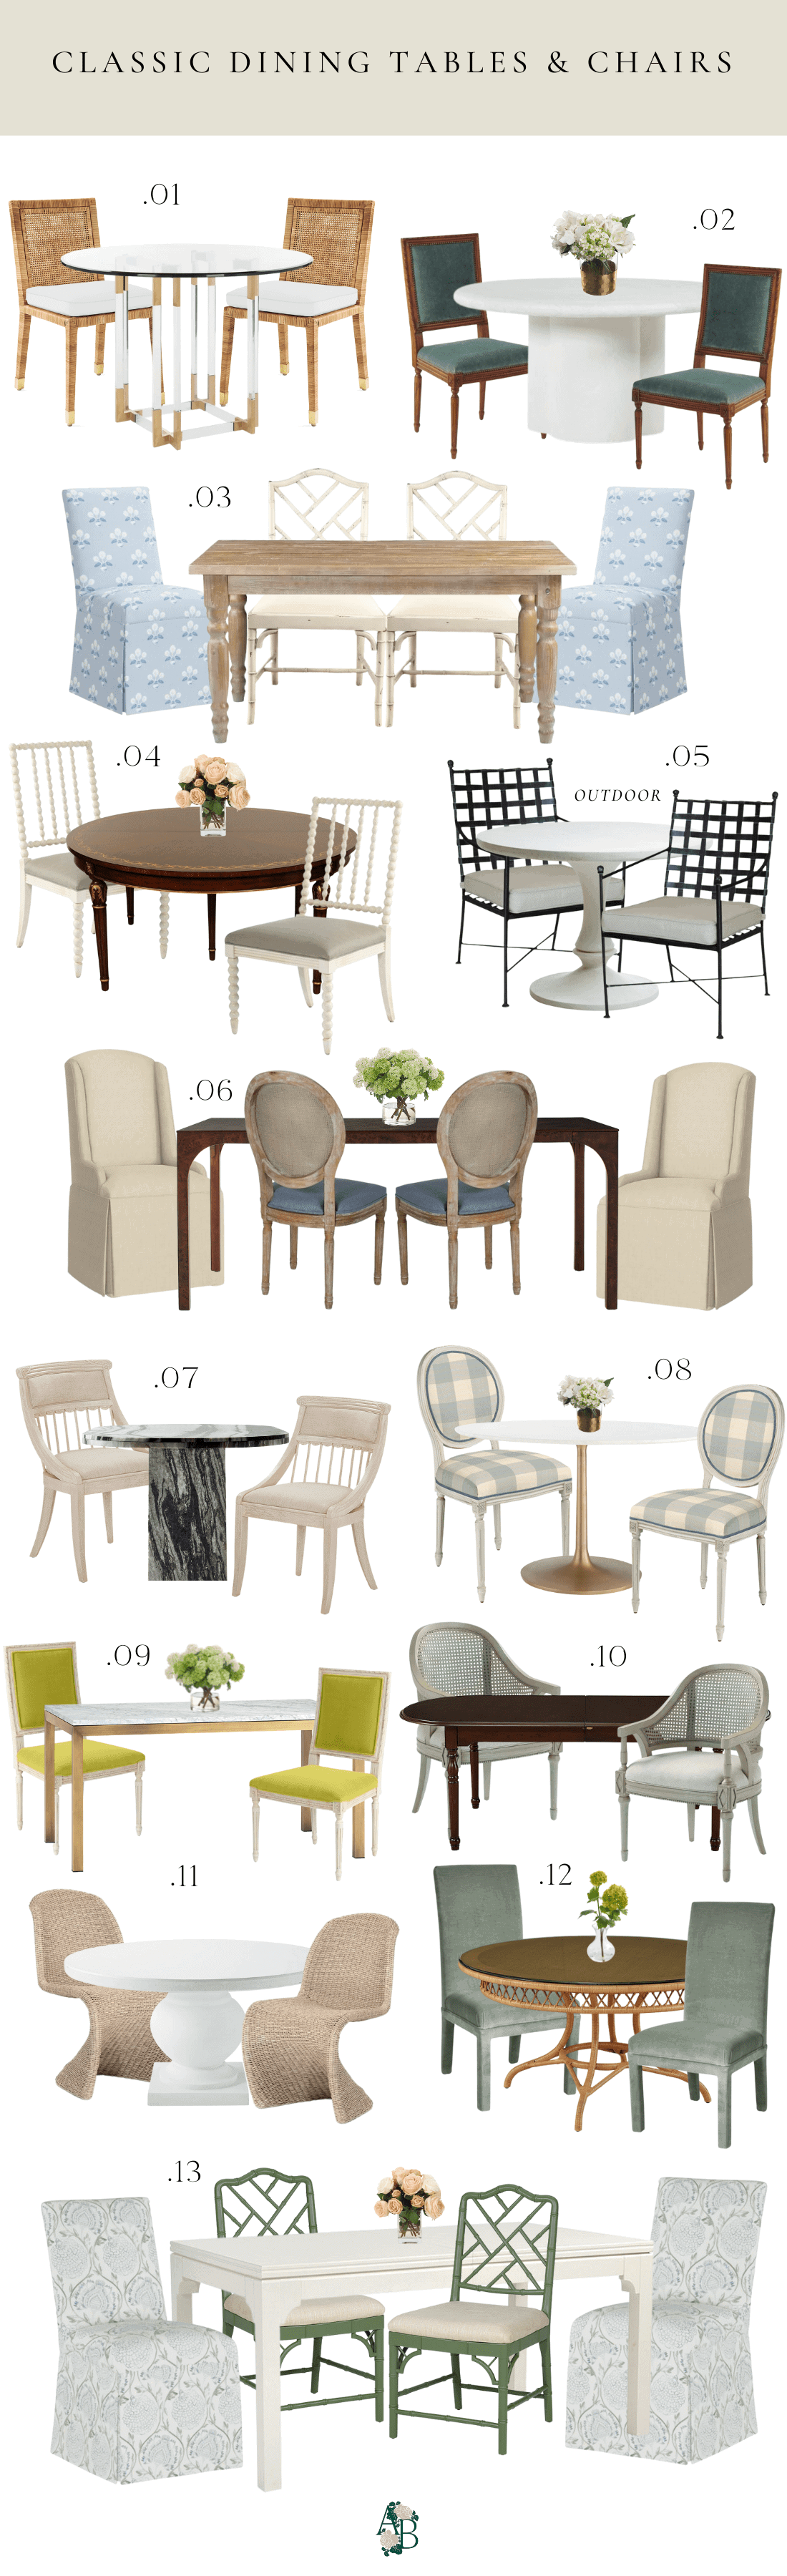 dining-chair-table-ideas-inspiration